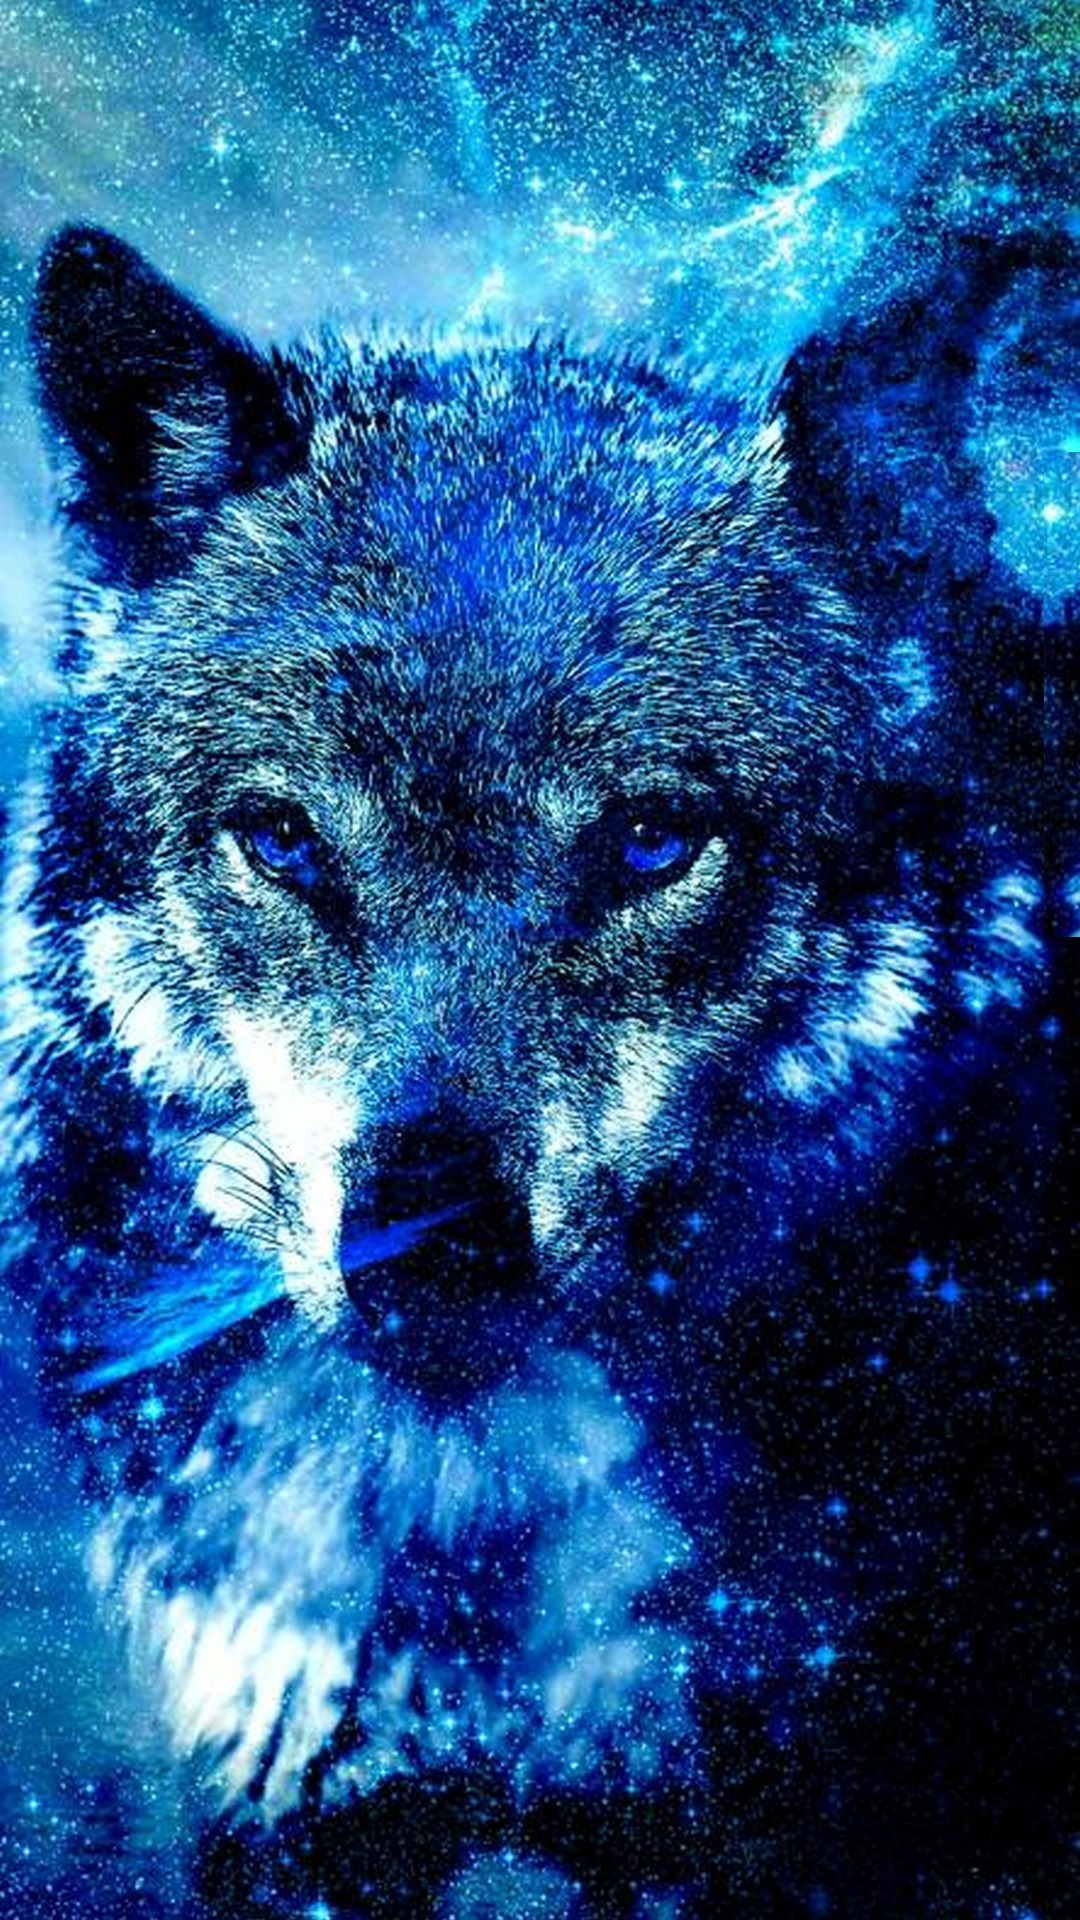 Wallpapers Phone Cool Wolf With High-resolution Pixel - Galaxy Wolf Cool Backgrounds , HD Wallpaper & Backgrounds